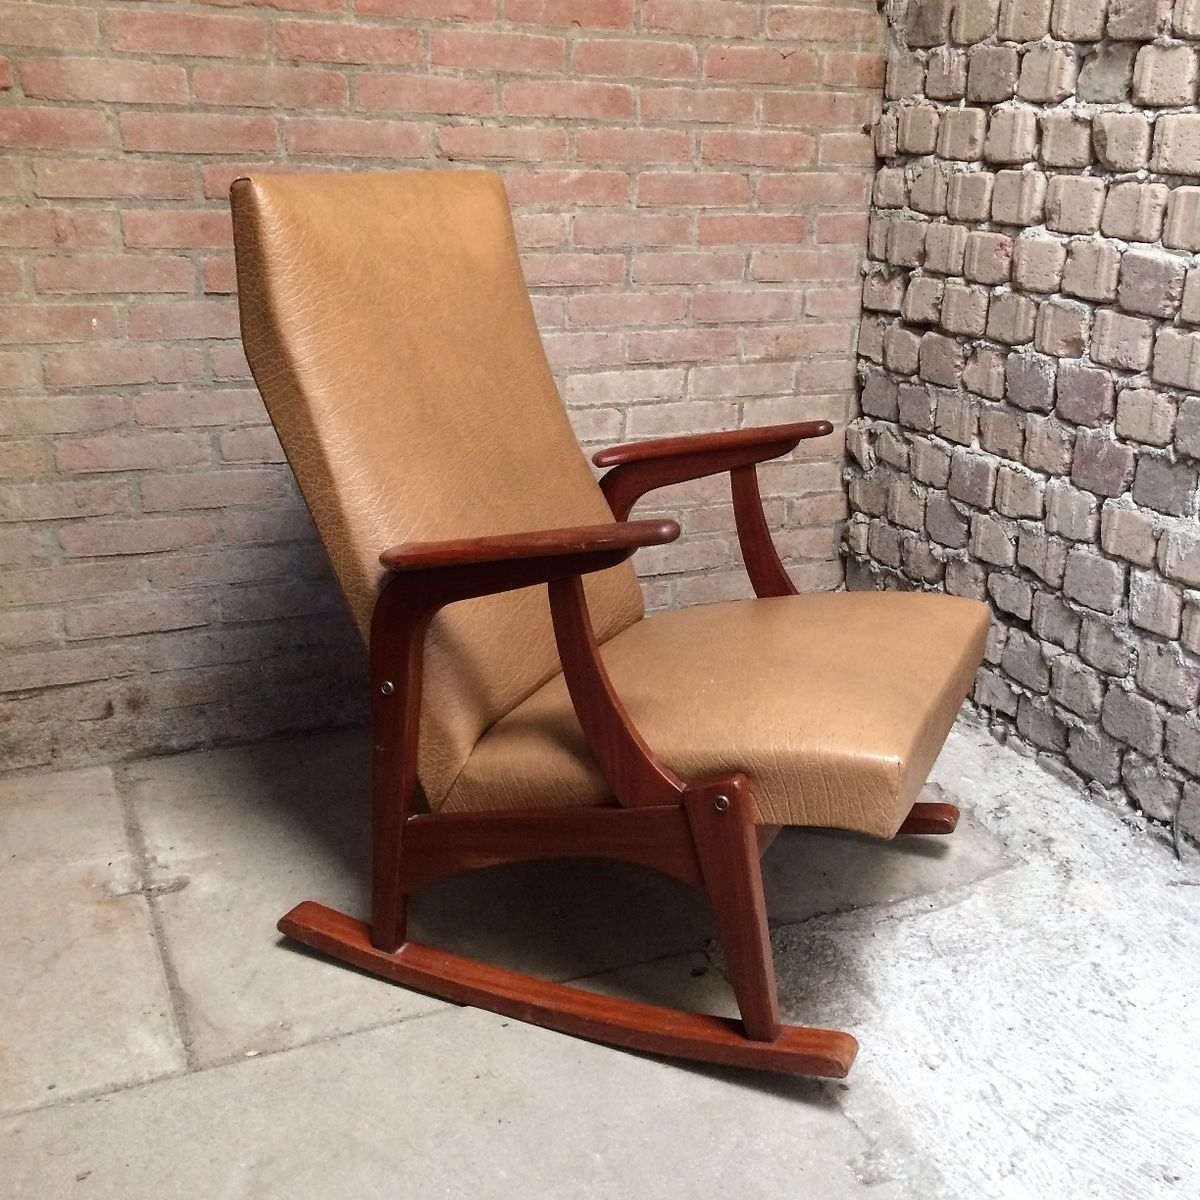 Vintage Rocking Chair, 1960S For Sale At Pamono With Regard To Most Current Retro Rocking Chairs (Gallery 18 of 20)